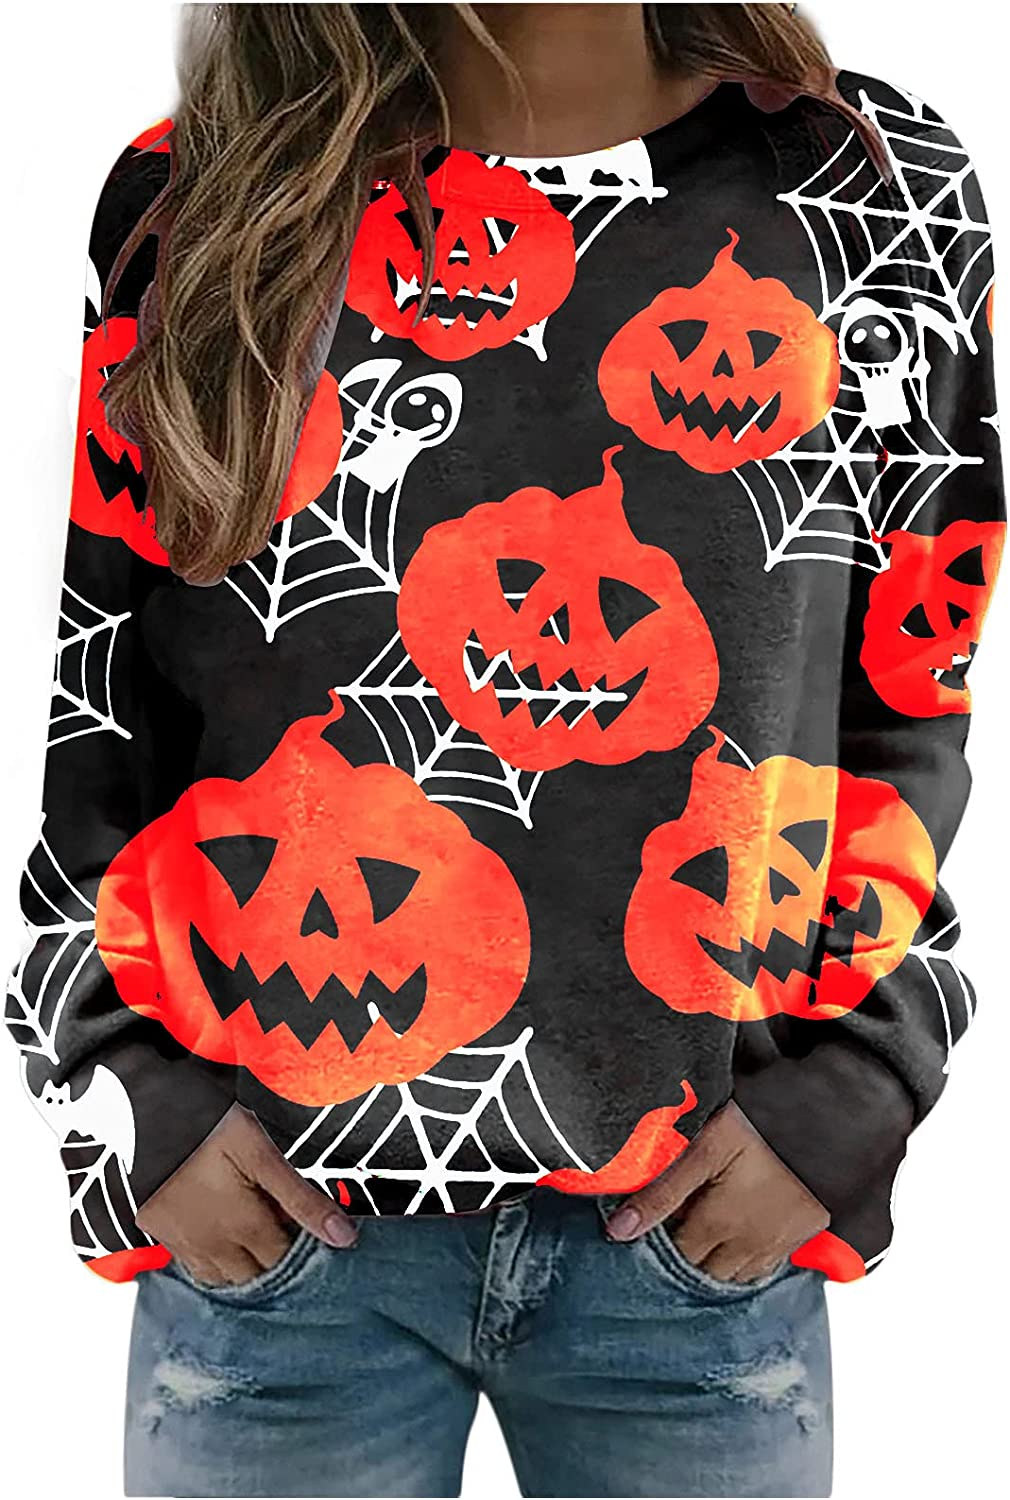 Teen Fashionable Special price for a limited time Girls Funny Cute Graphic Halloween Kawaii Sweatshirt Pumpk